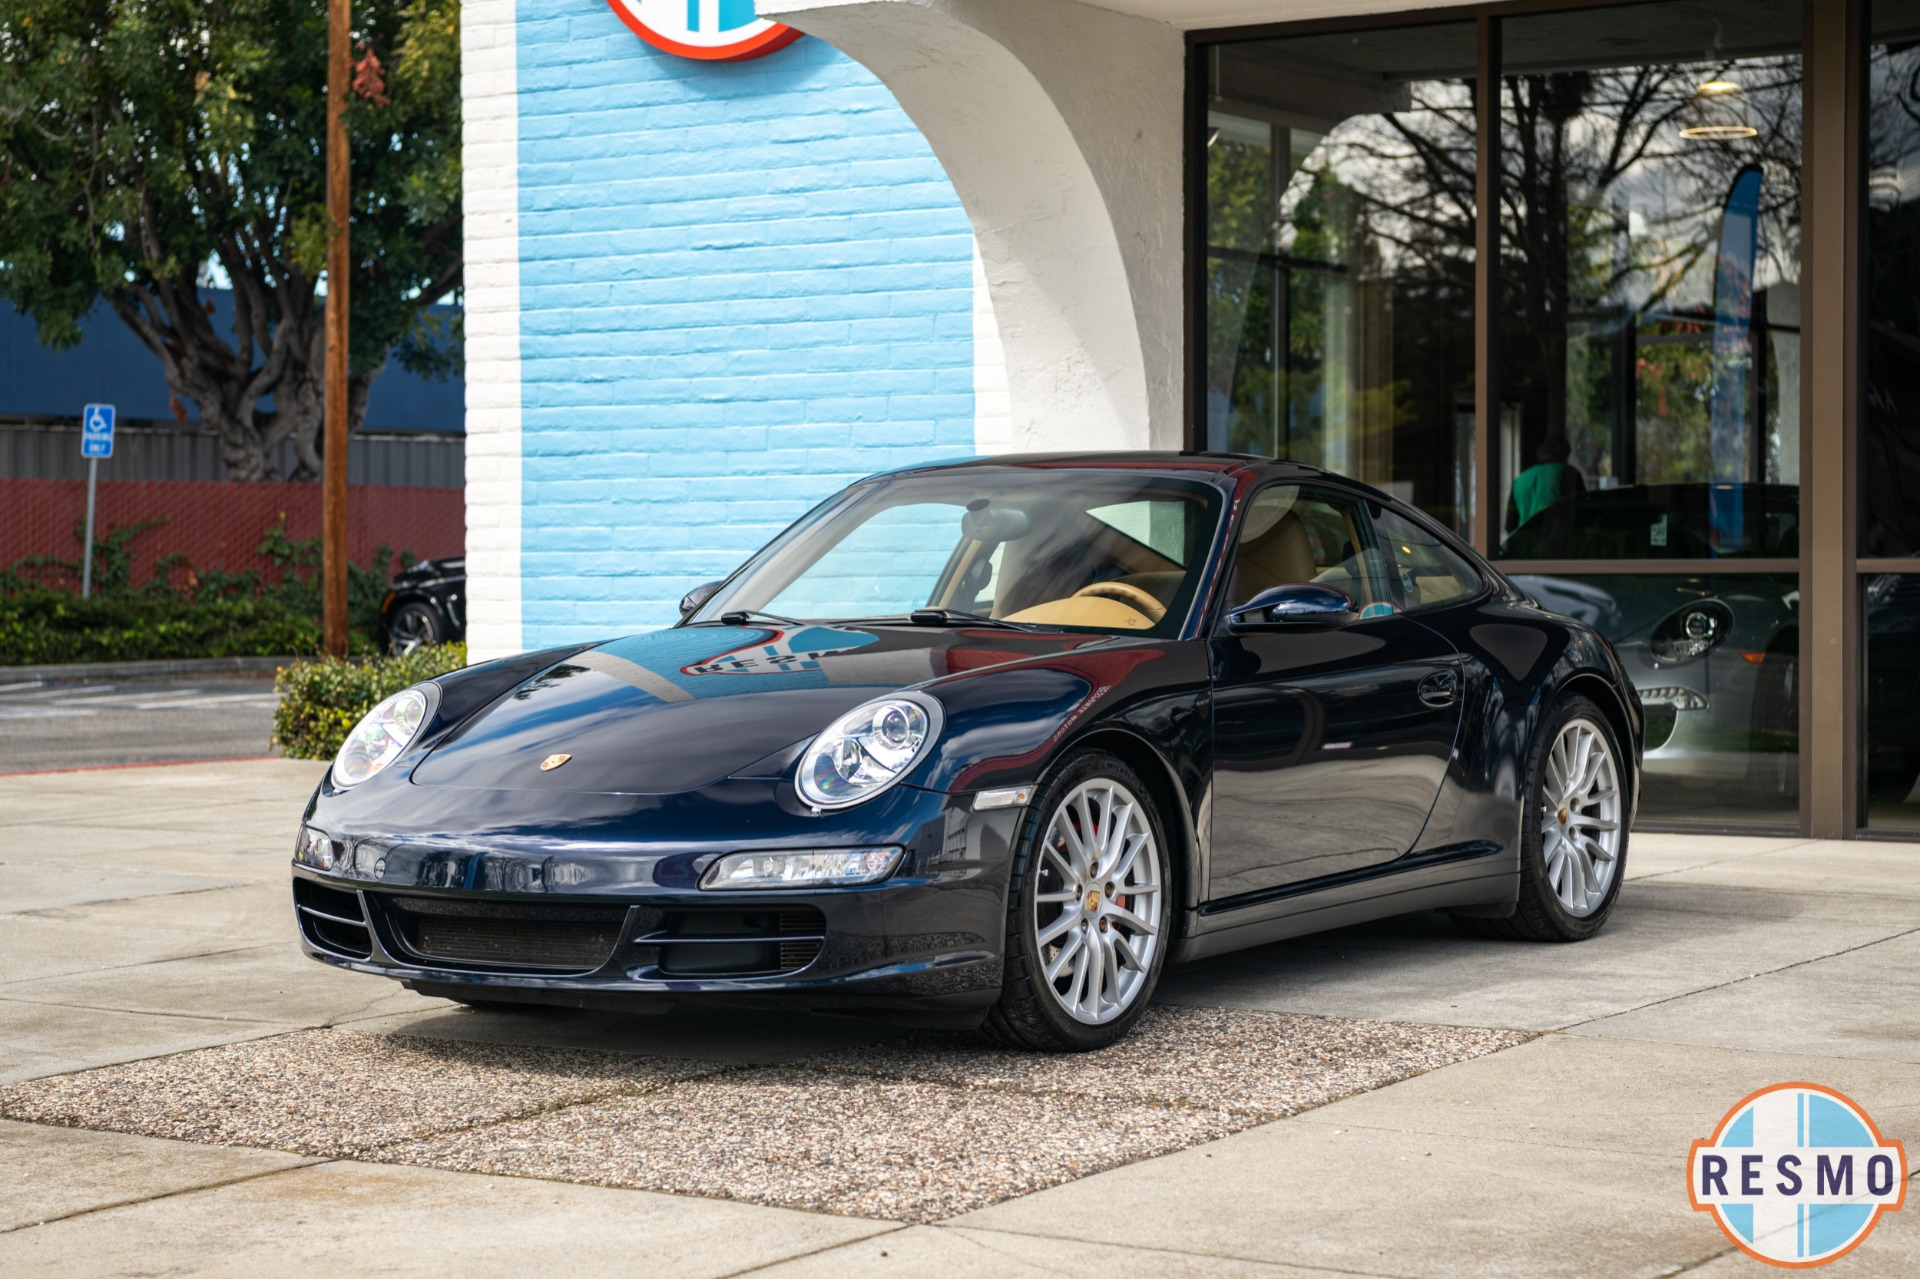 Used 2008 Porsche 911 Carrera 4S Used 2008 Porsche 911 Carrera 4S for sale $41,999 at Response Motors in Mountain View CA 12